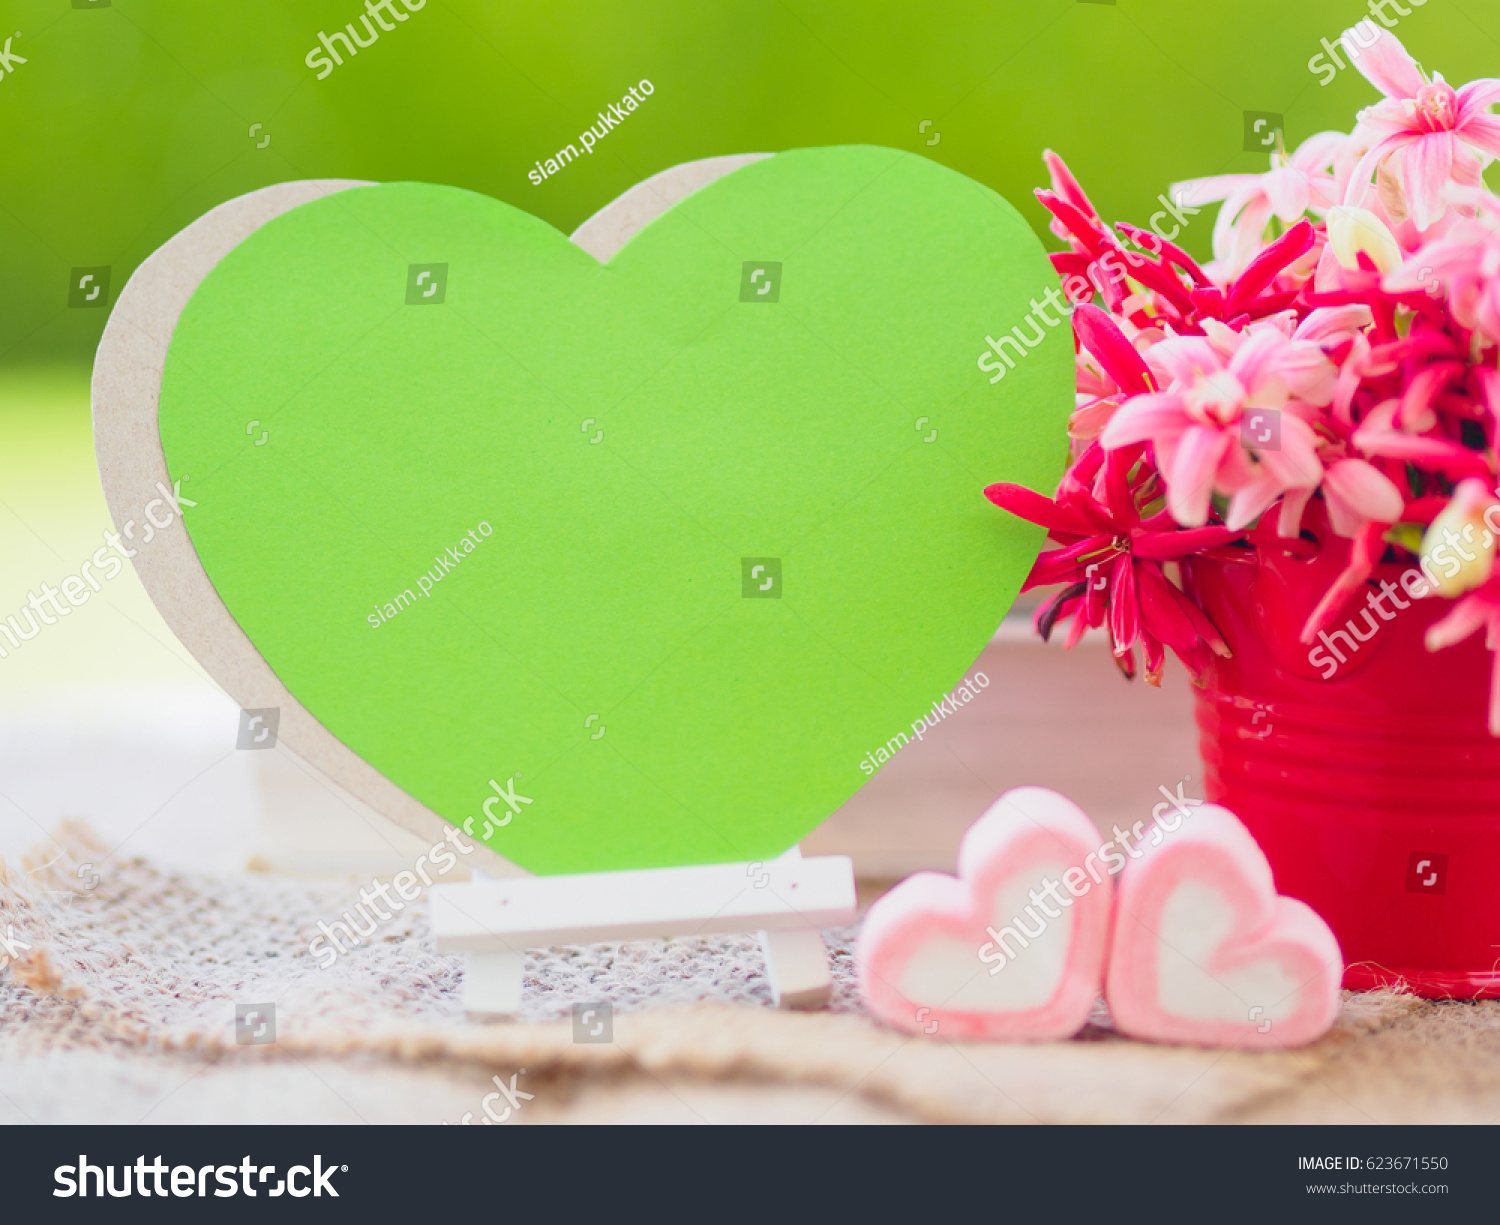 Poster Mock Template Flower Bouquet Marshmallow Stock Photo (Royalty ...